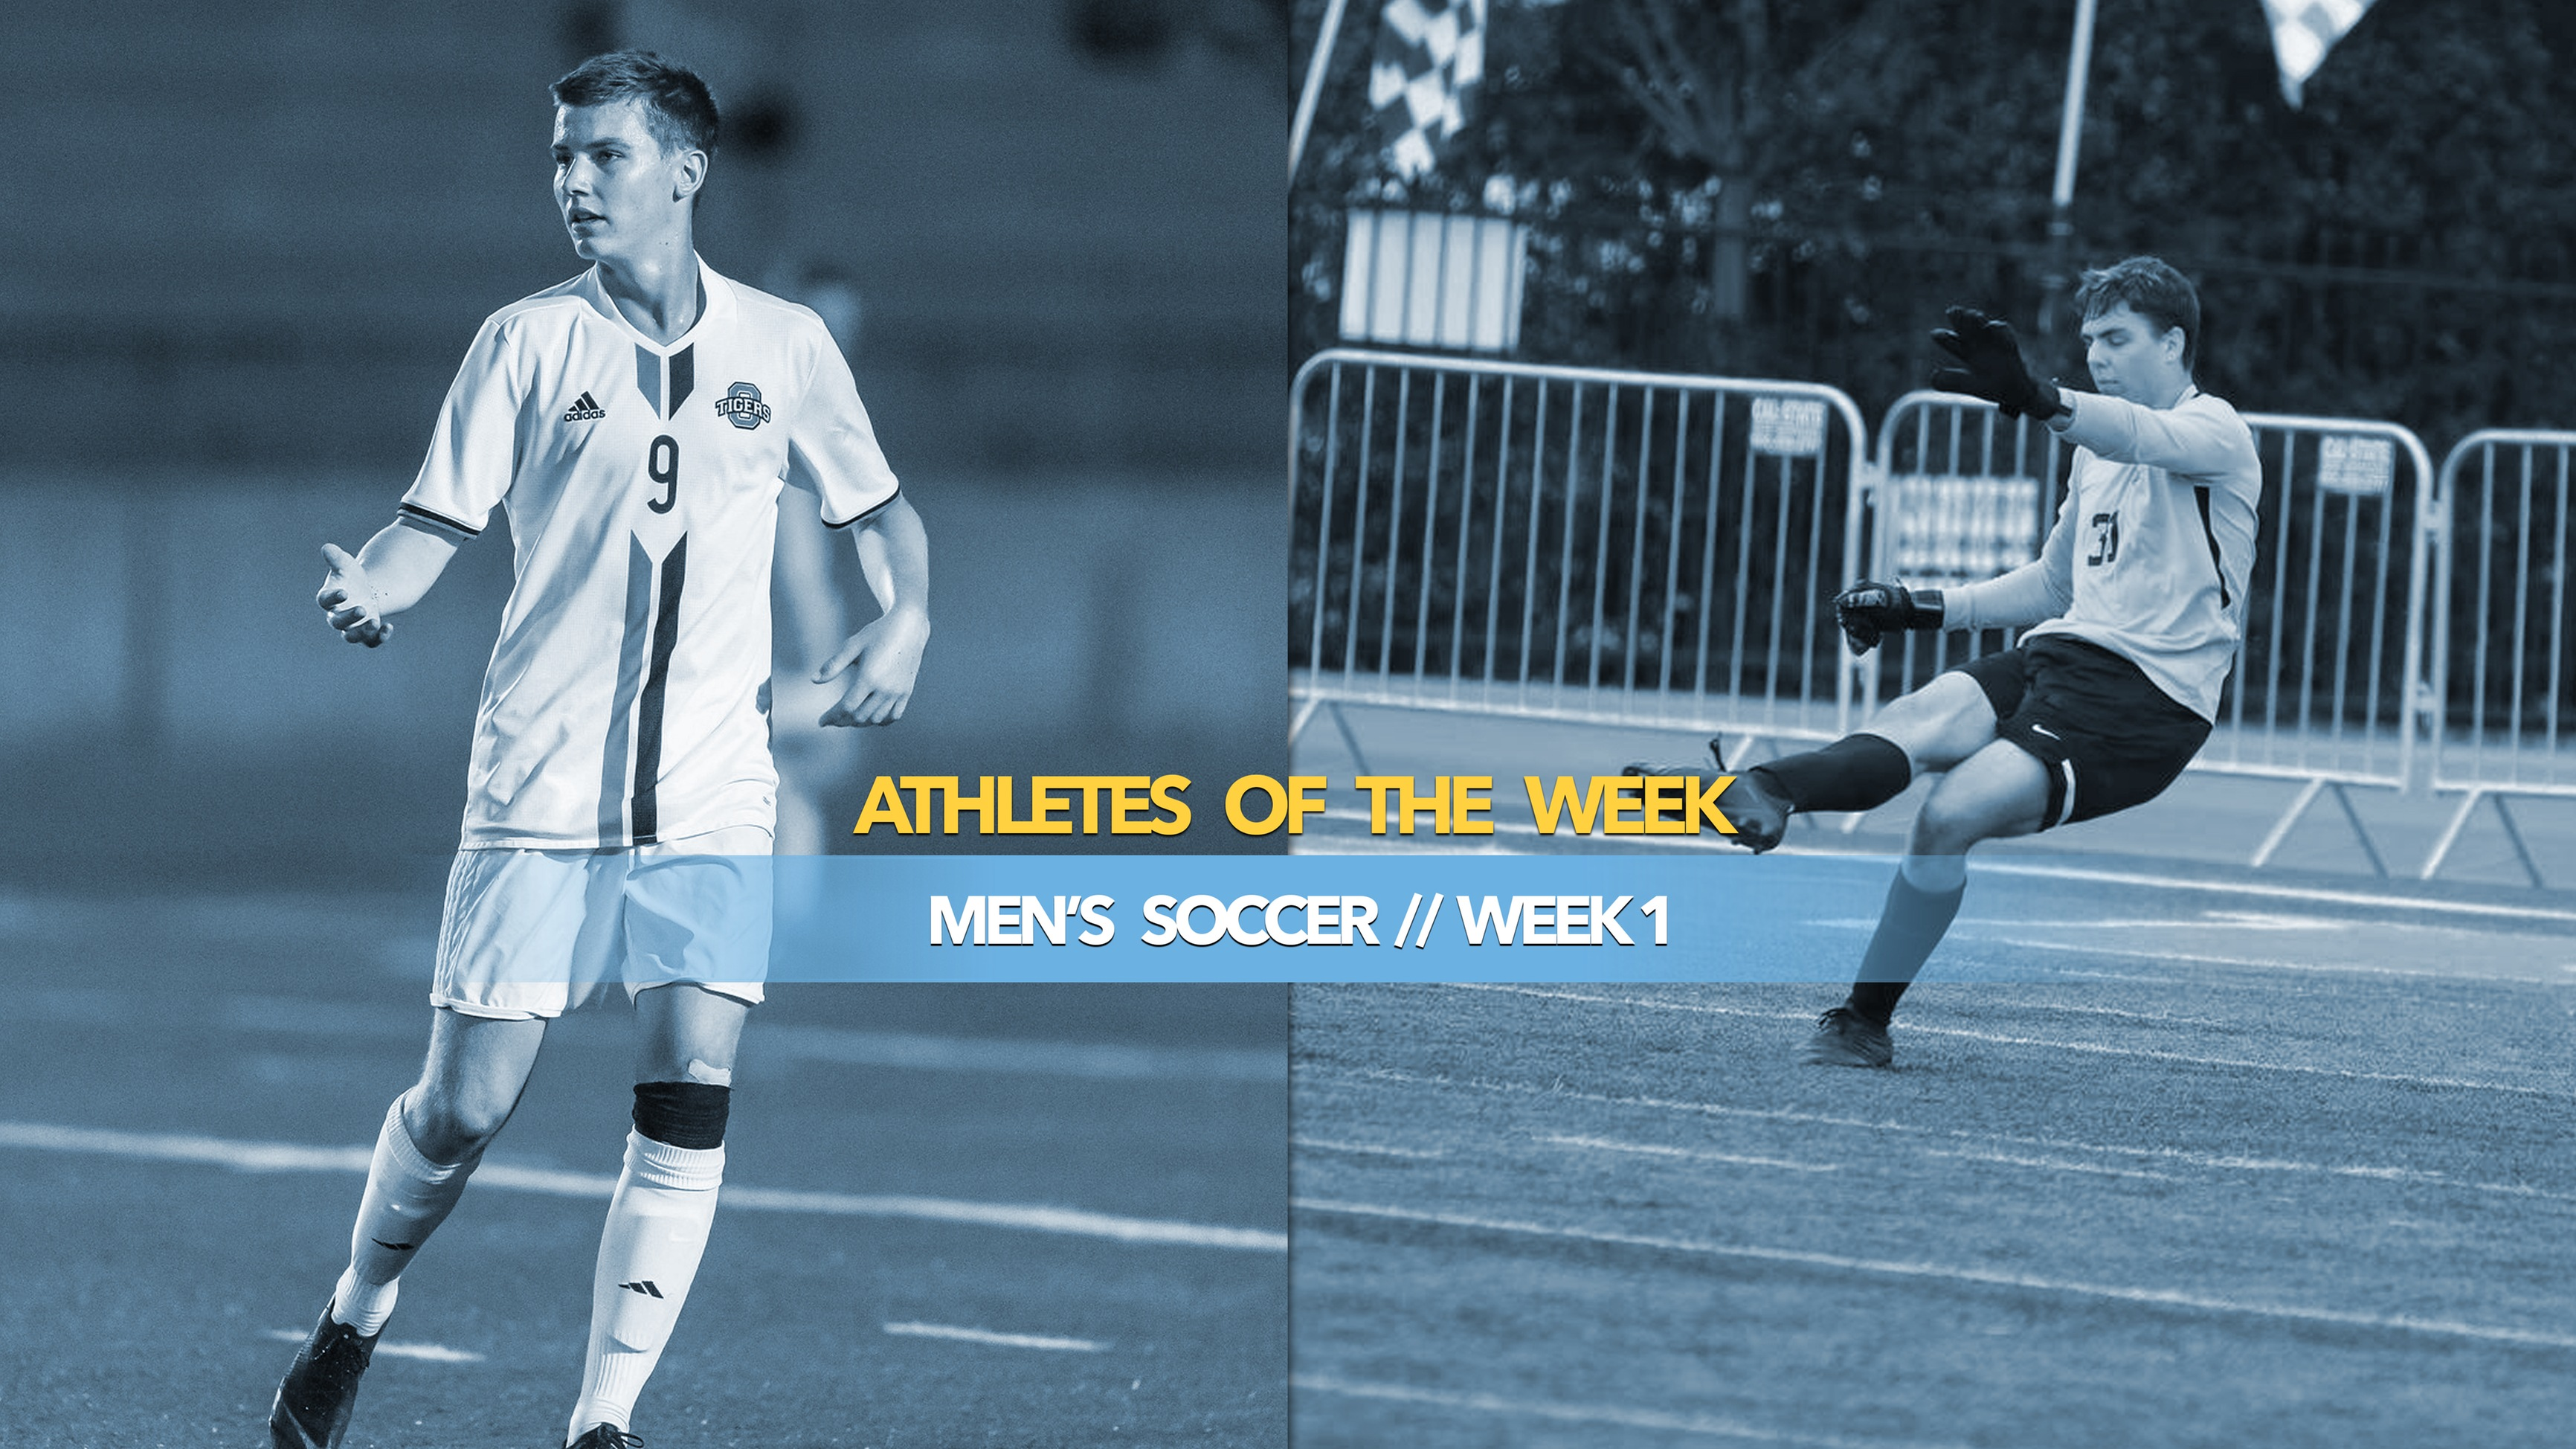 Men's Soccer Athletes of the Week: September 2, 2019